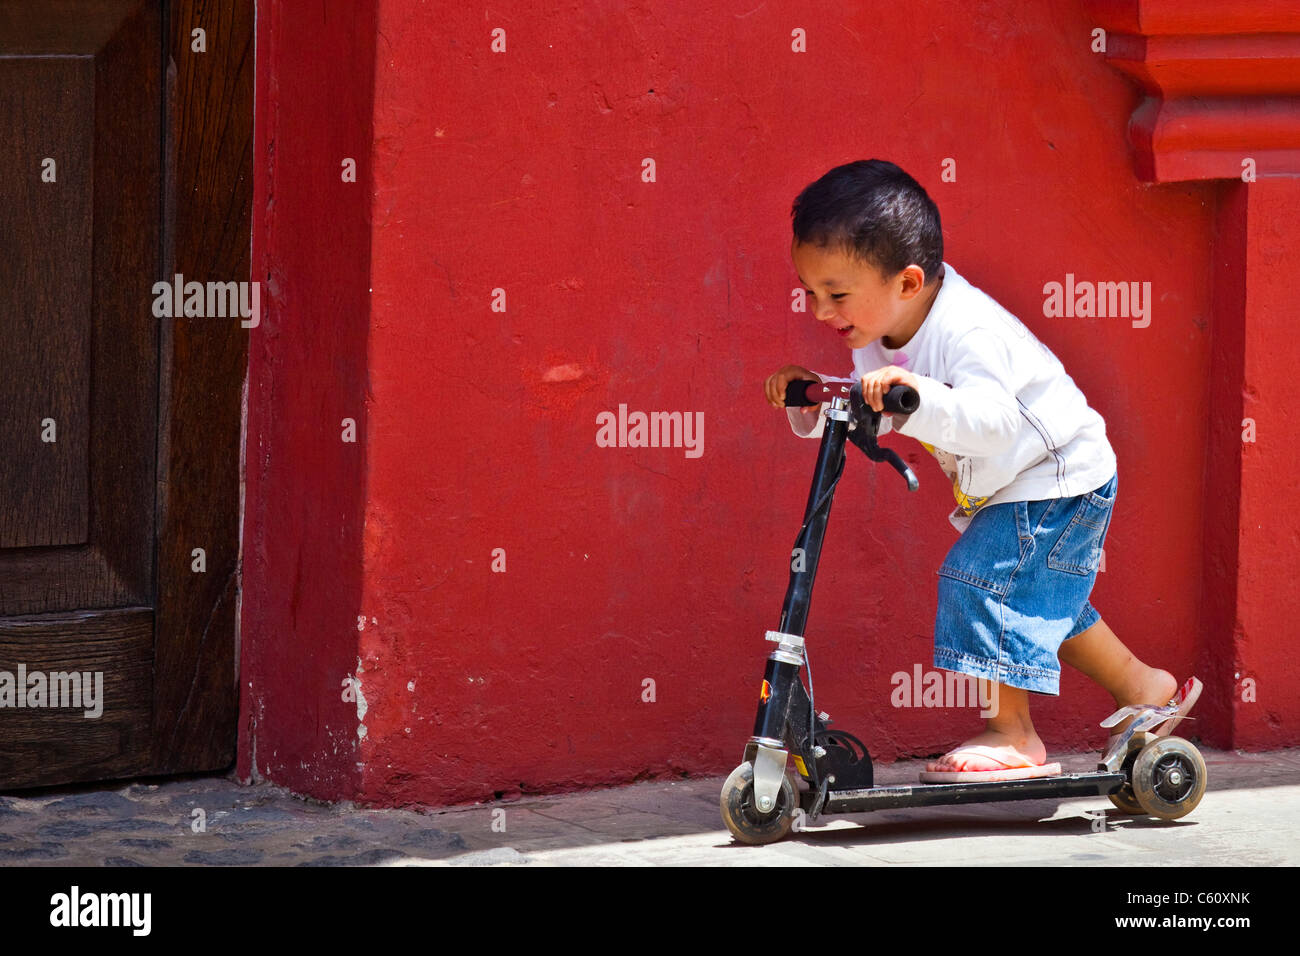 Young boy playing on a razor scooter, Antigua, Guatemala - Stock Image